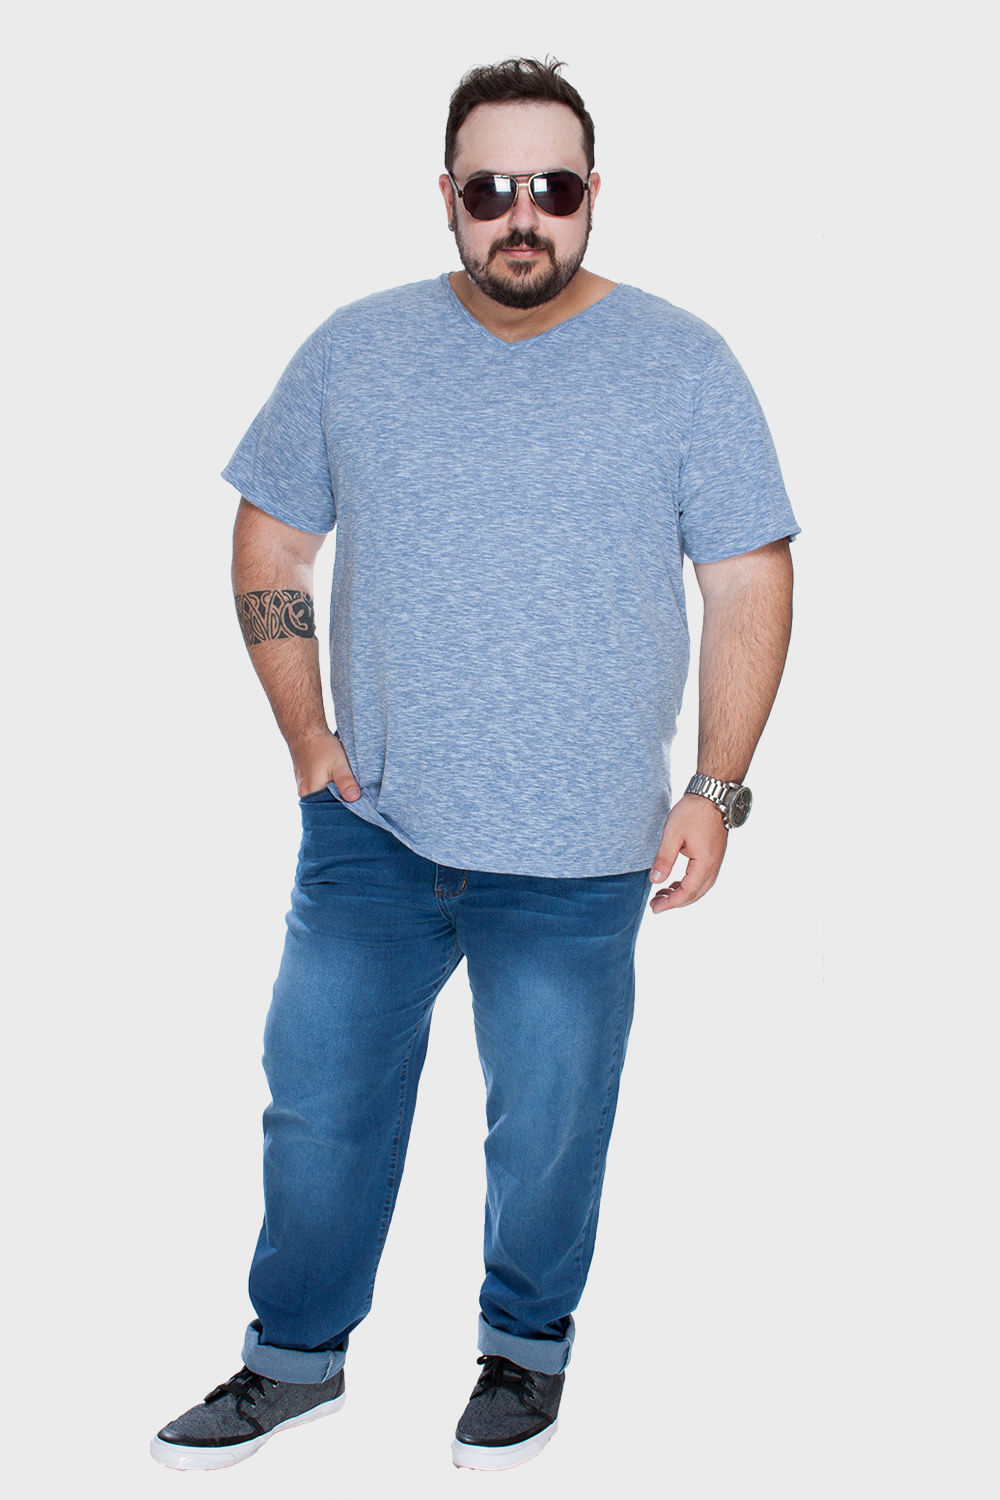 Calca-Jeans-Casual-Plus-Size_1